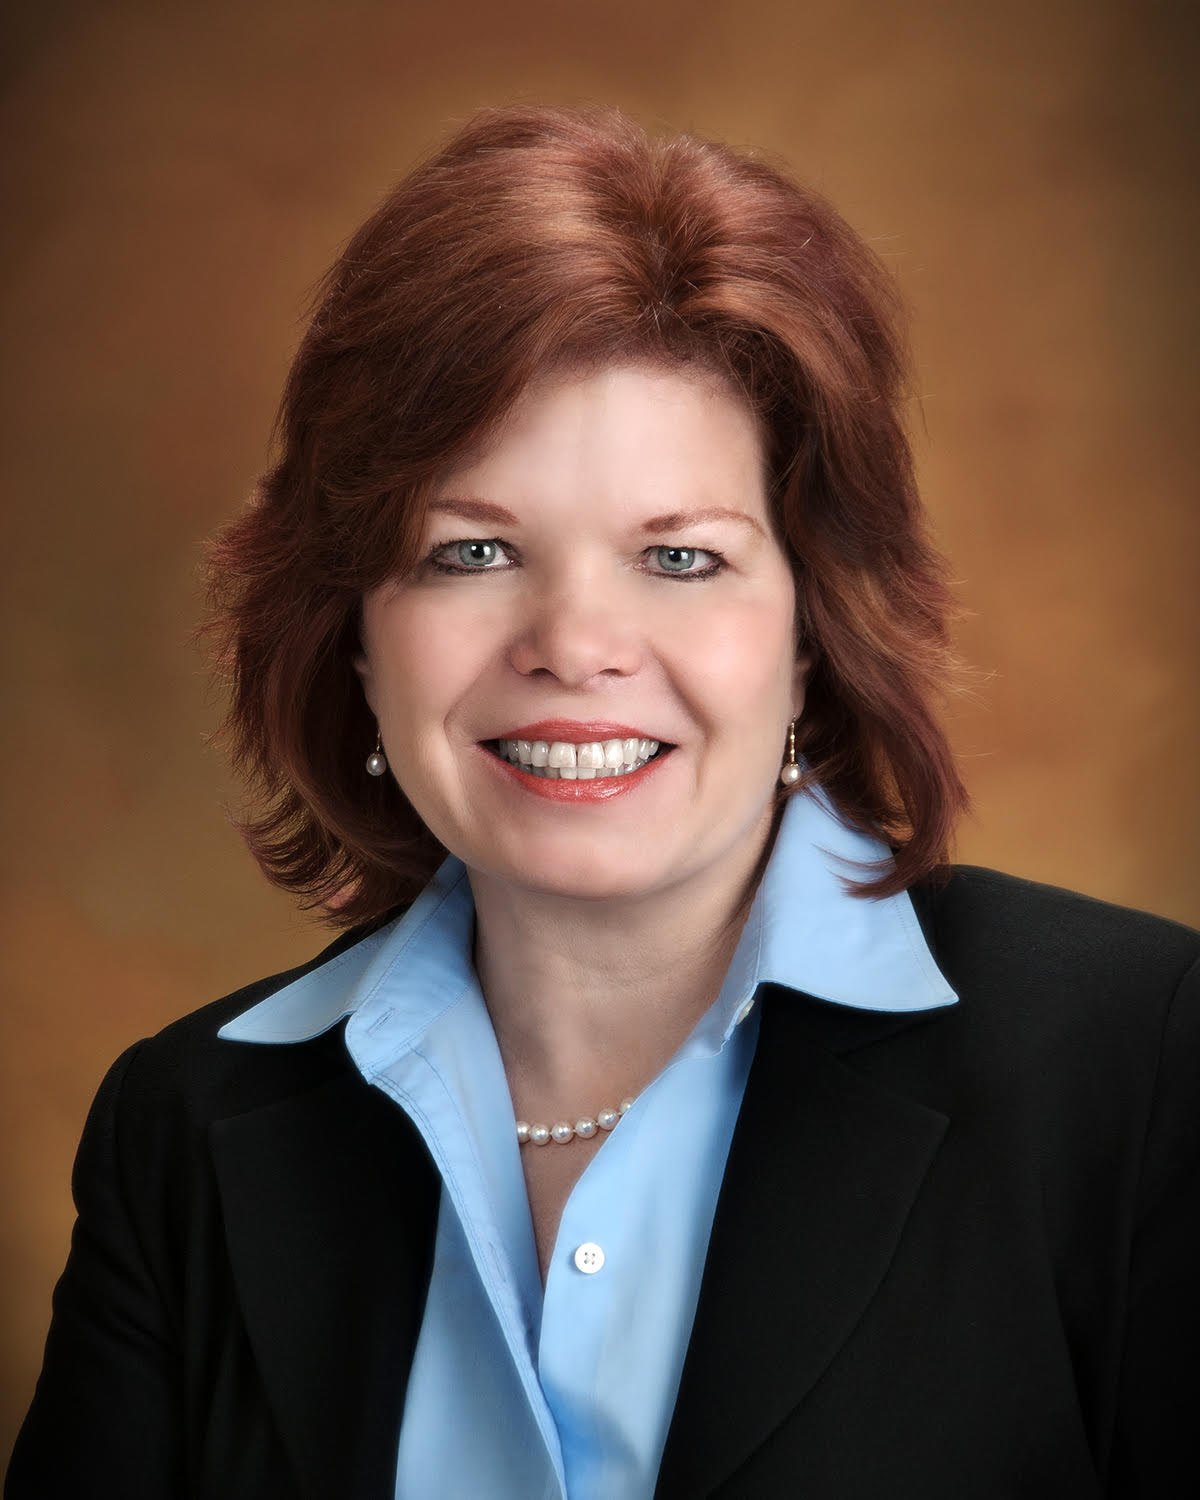 Please help us welcome Carol Skubic to our Coldwell Banker family! Main Photo